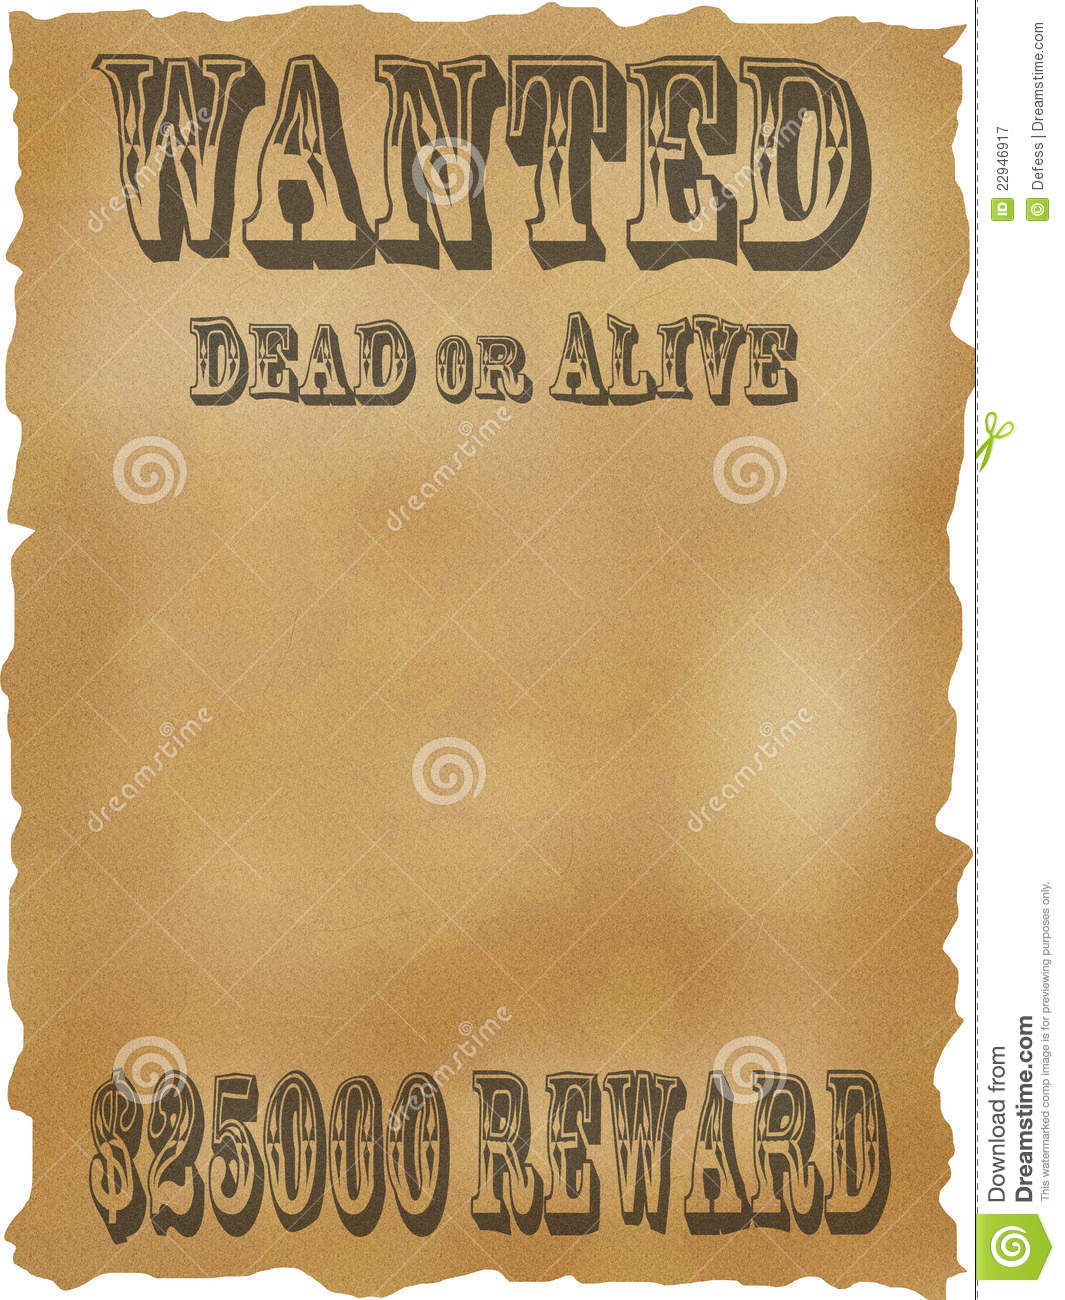 Poster Wanted Dead Or Alive Royalty Free Stock